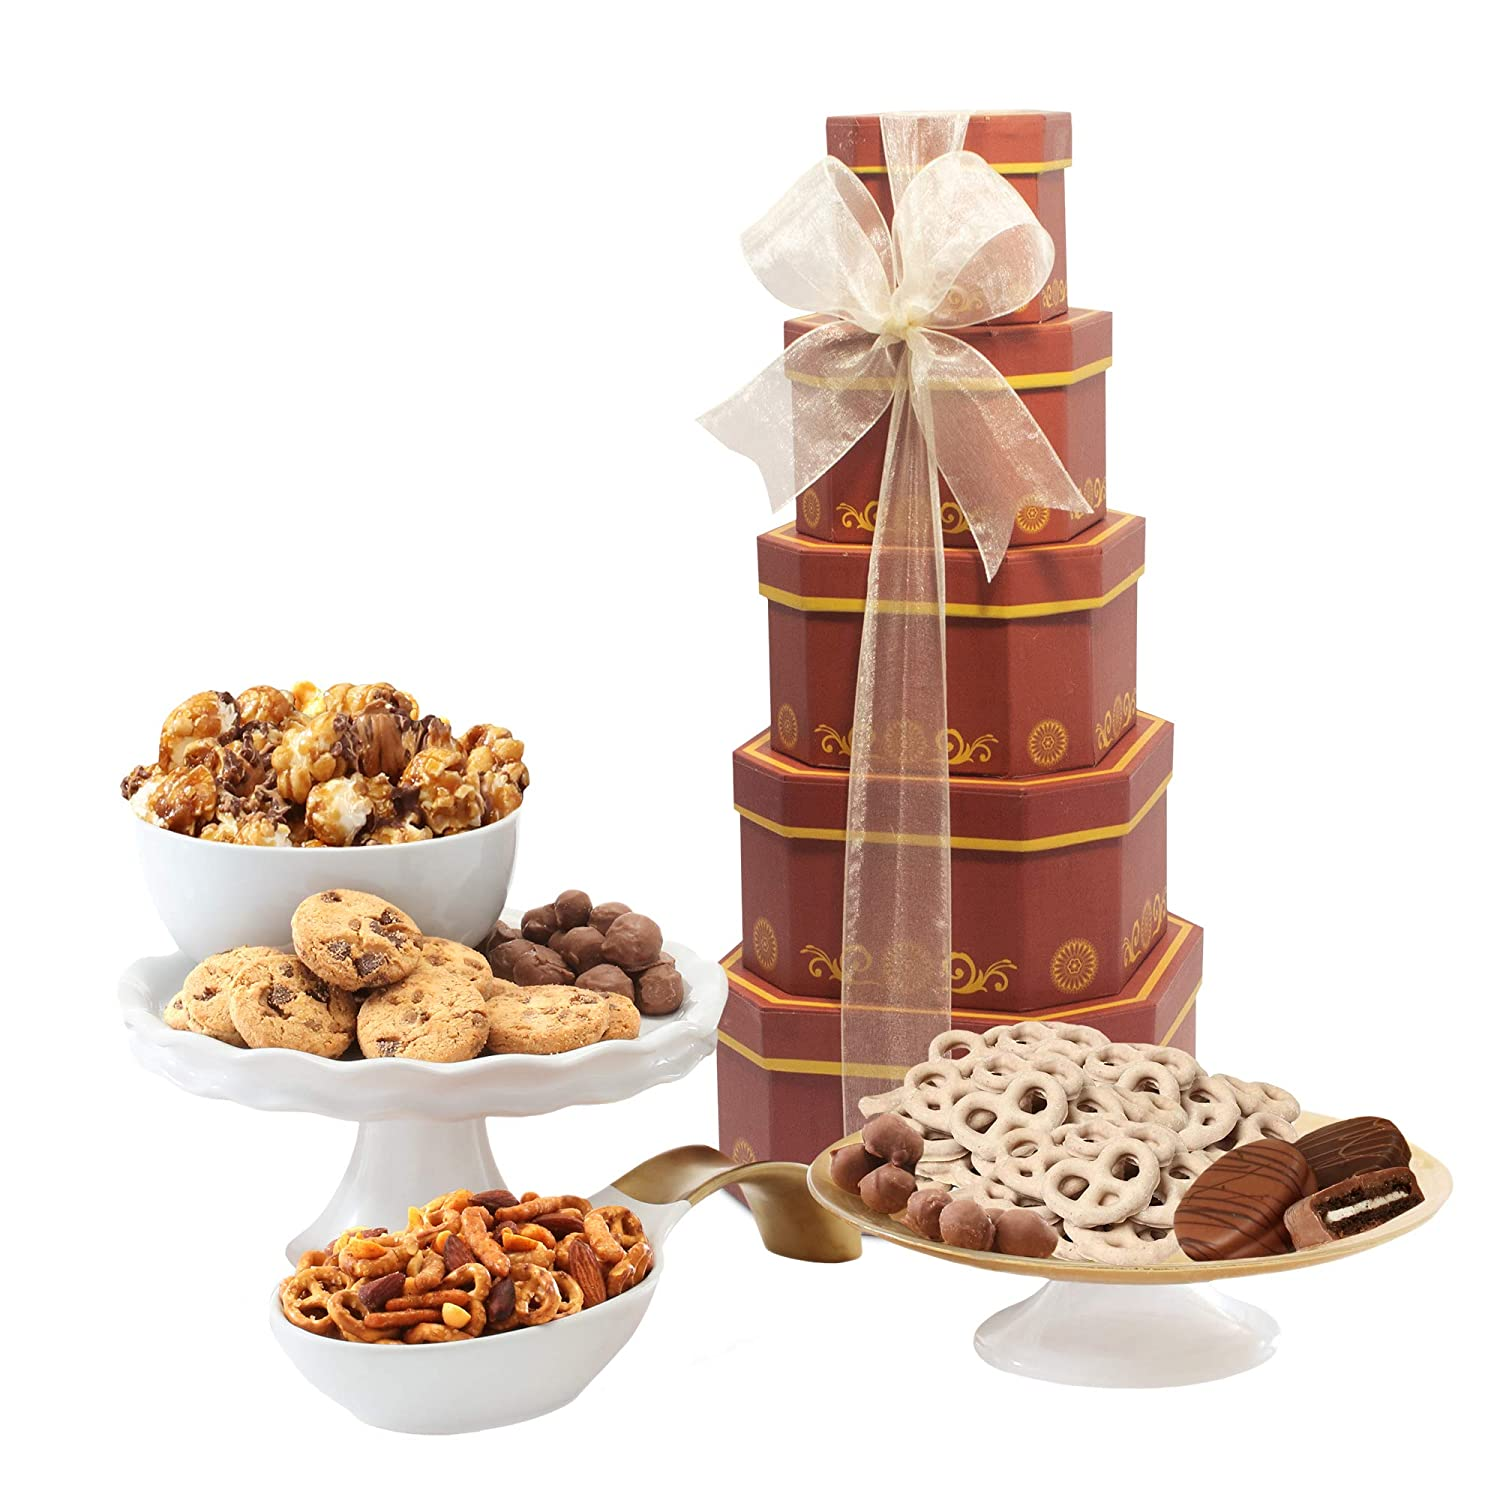 B003U82VTC Broadway Basketeers Gift Tower of Sweets 811w9jof98L